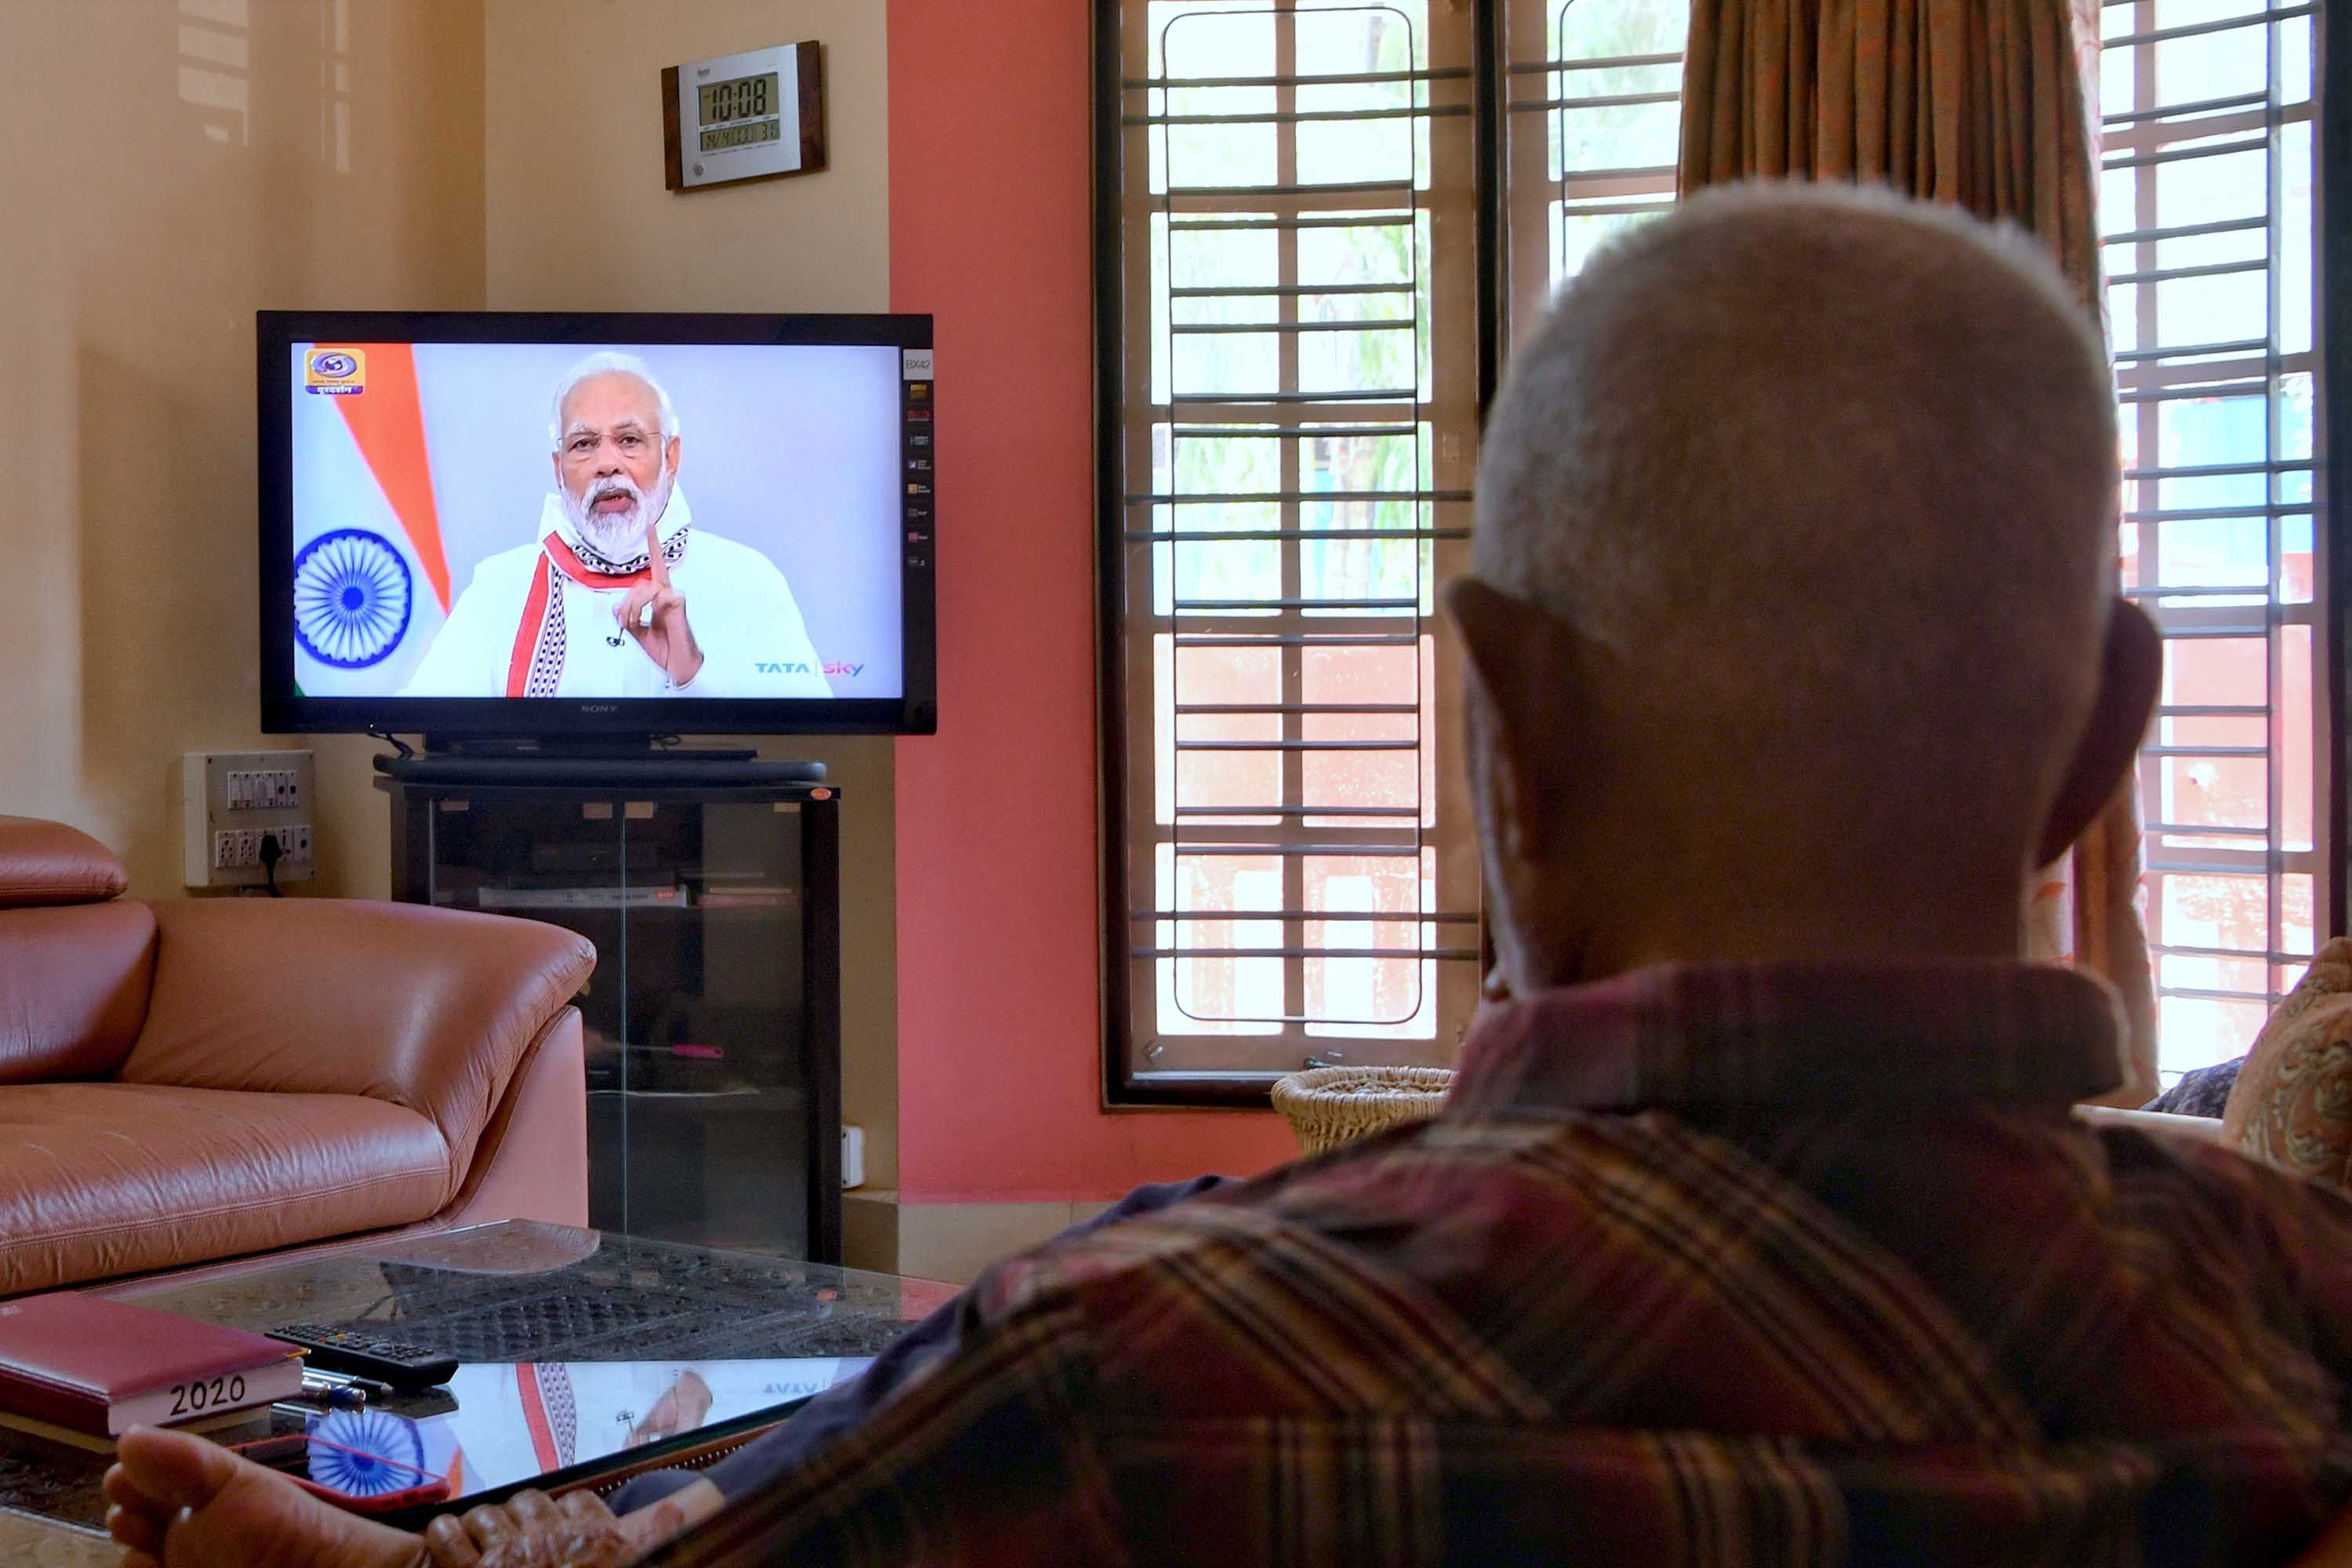 A man watches Indian Prime Minister Narendra Modi address the nation during a television broadcast in Bangalore, India, on April 14.